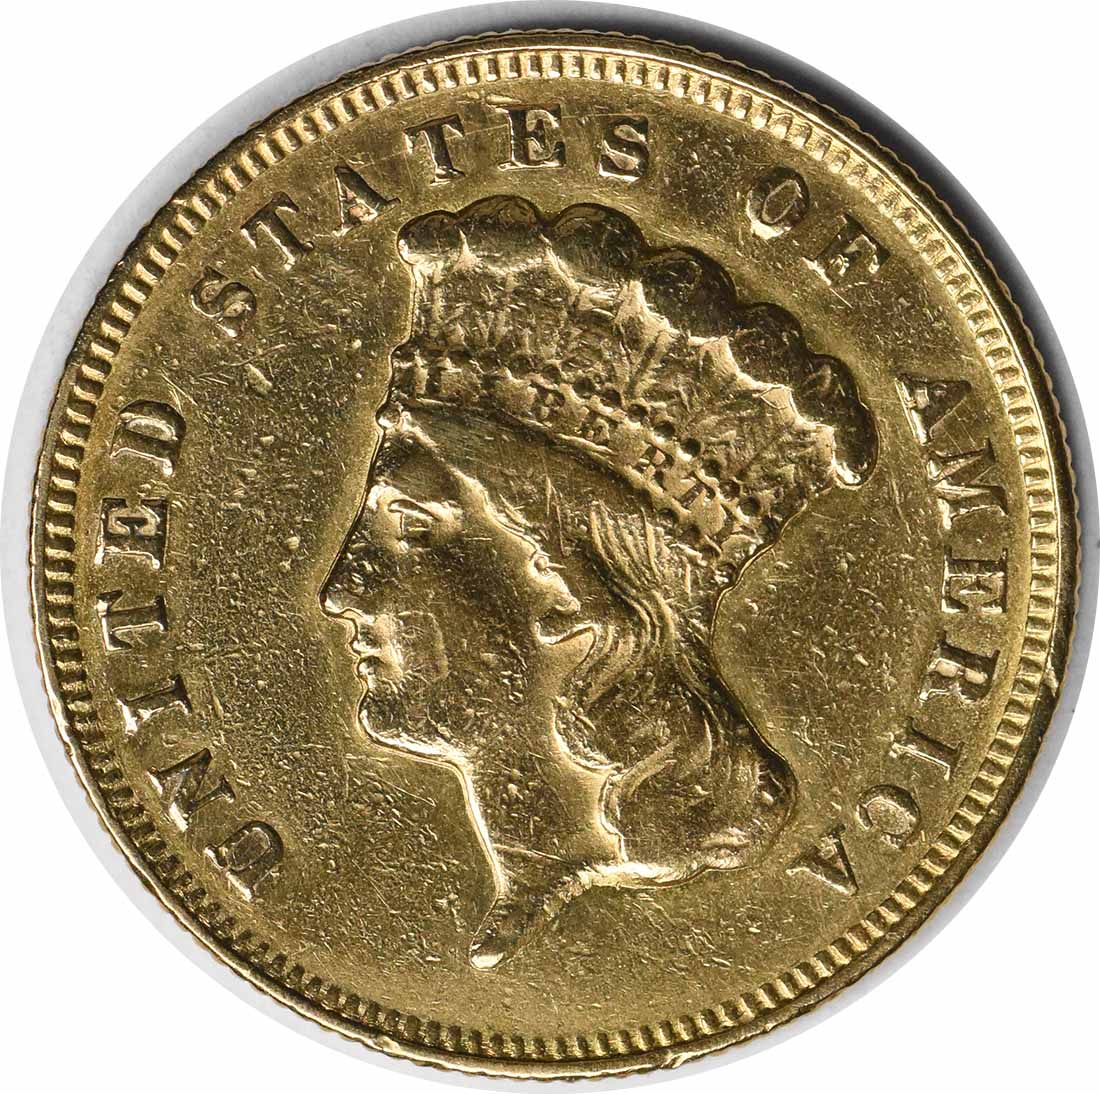 1874 $3 Gold EF Uncertified Indian